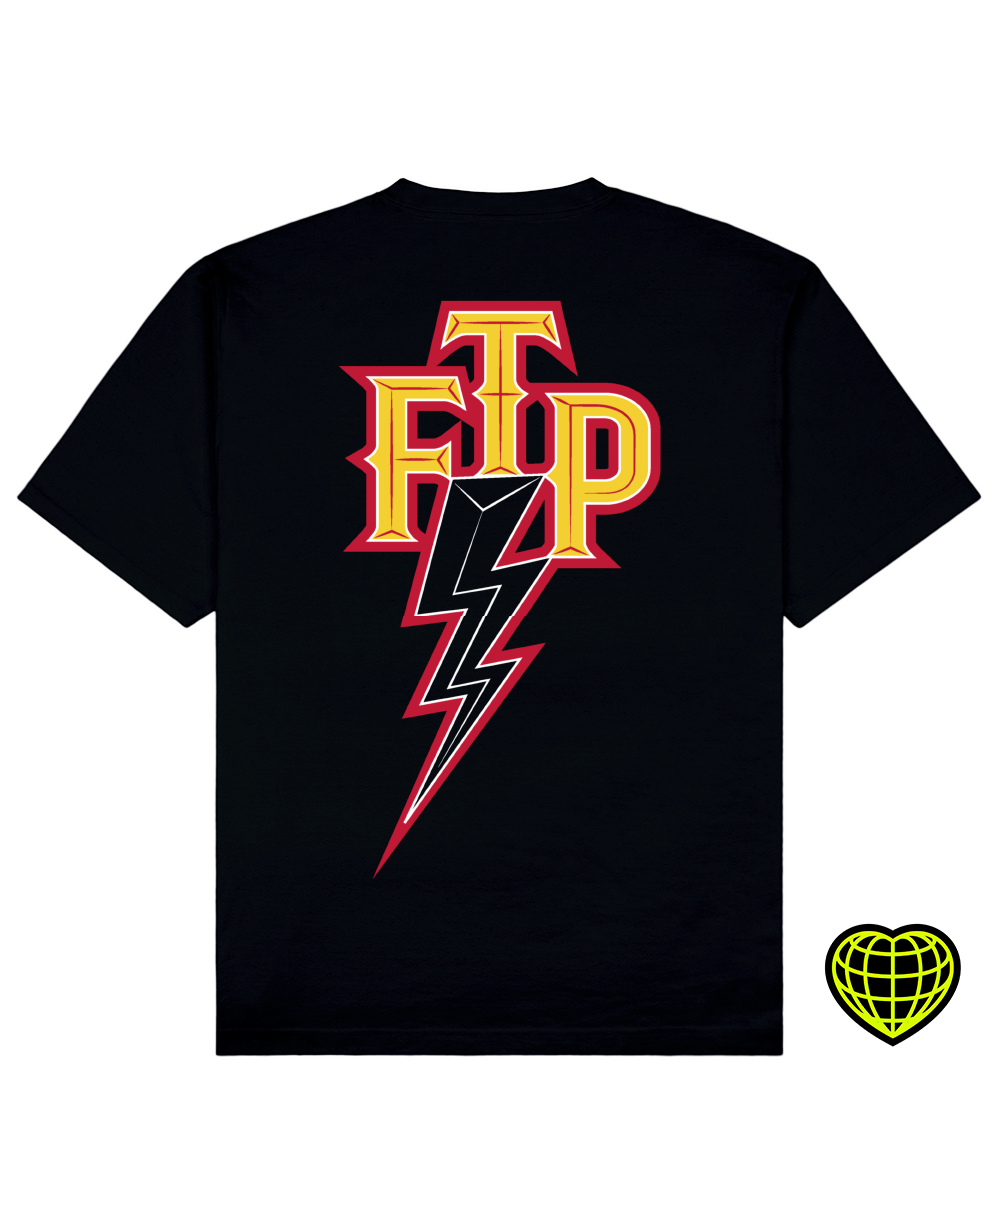 FTP Print T-shirt in Black - T-Shirts - MIDNIGHT RATS - BRANMA